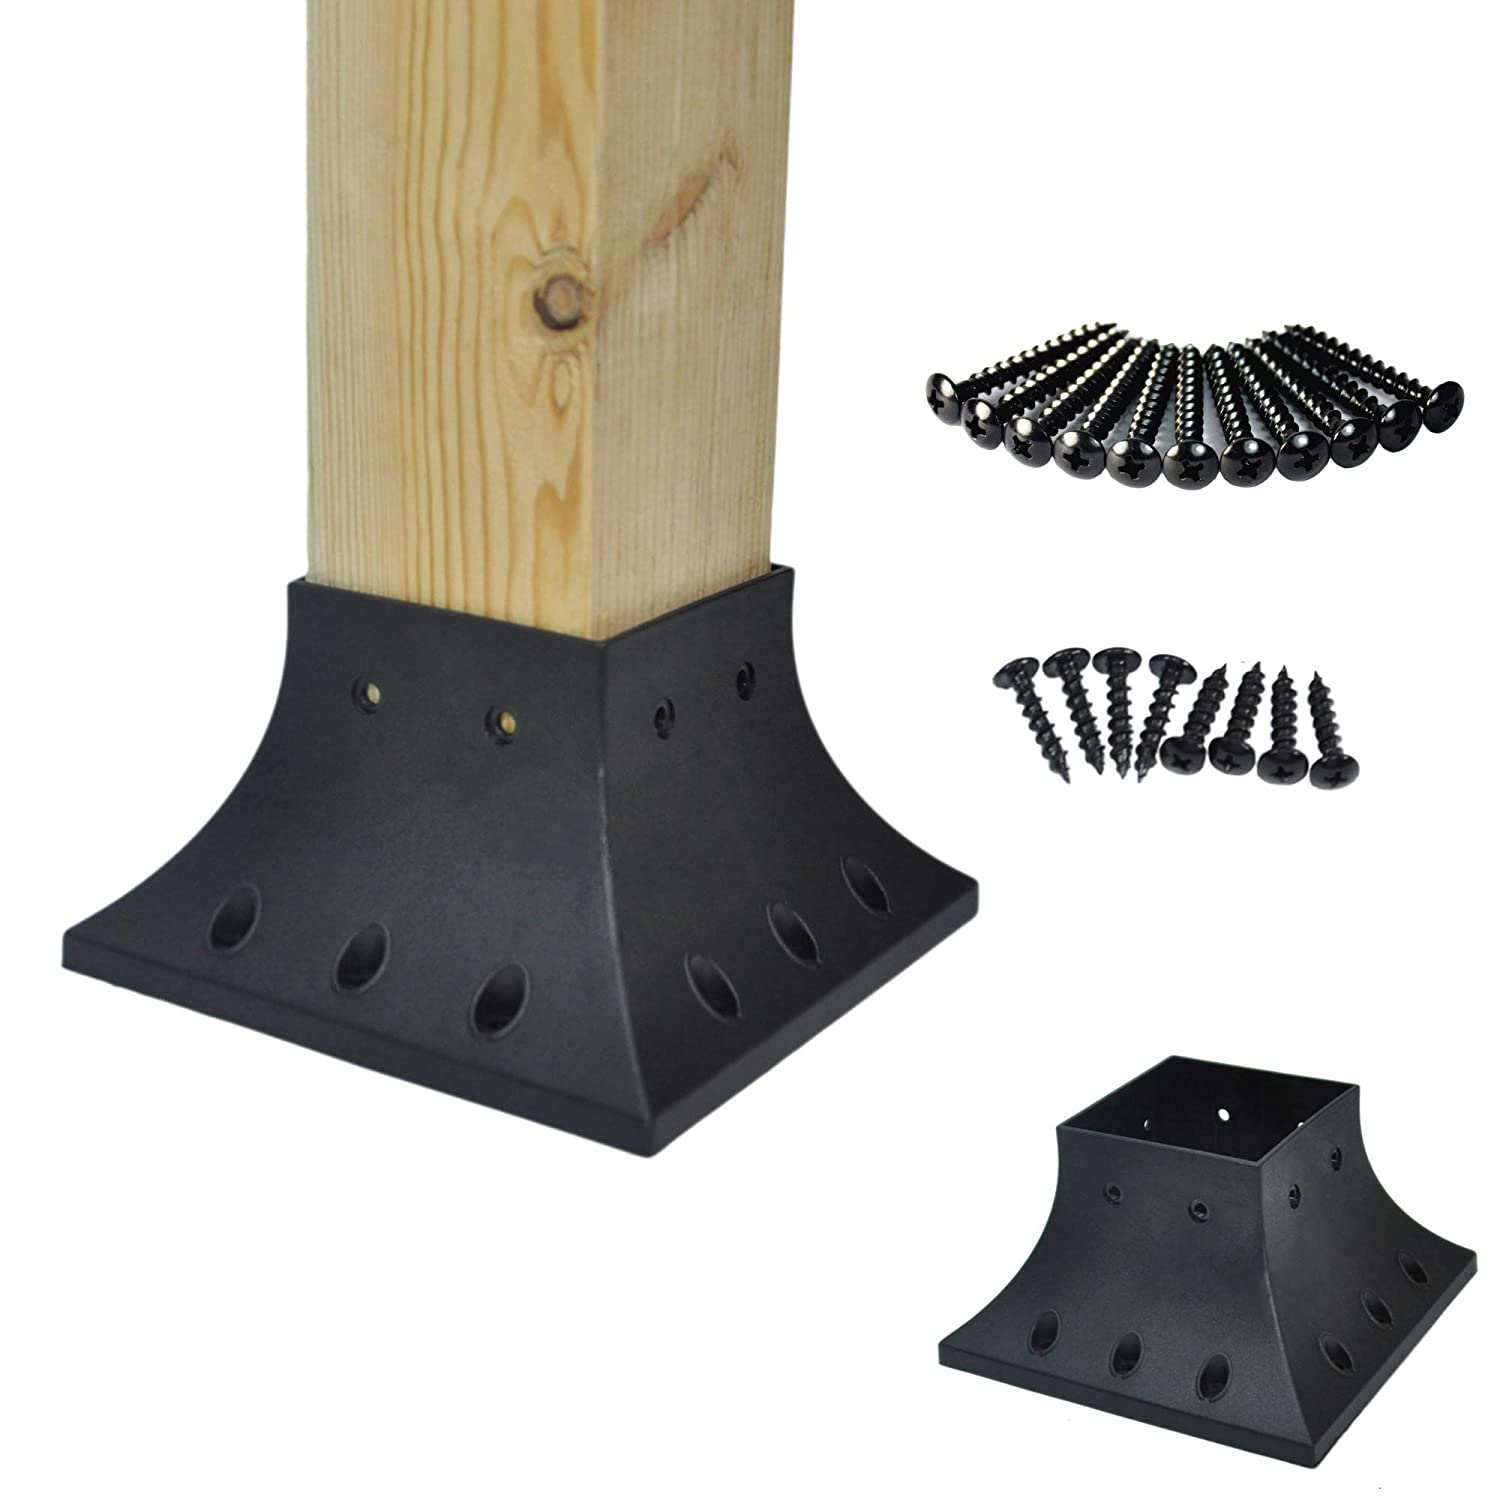 Myard 4x4 (actual 3.5x3.5) Inches Post Base Cover Skirt Flange w/Screws for Deck Porch Handrail Railing Support Trim Anchor (Qty 1, Black) PNP114040